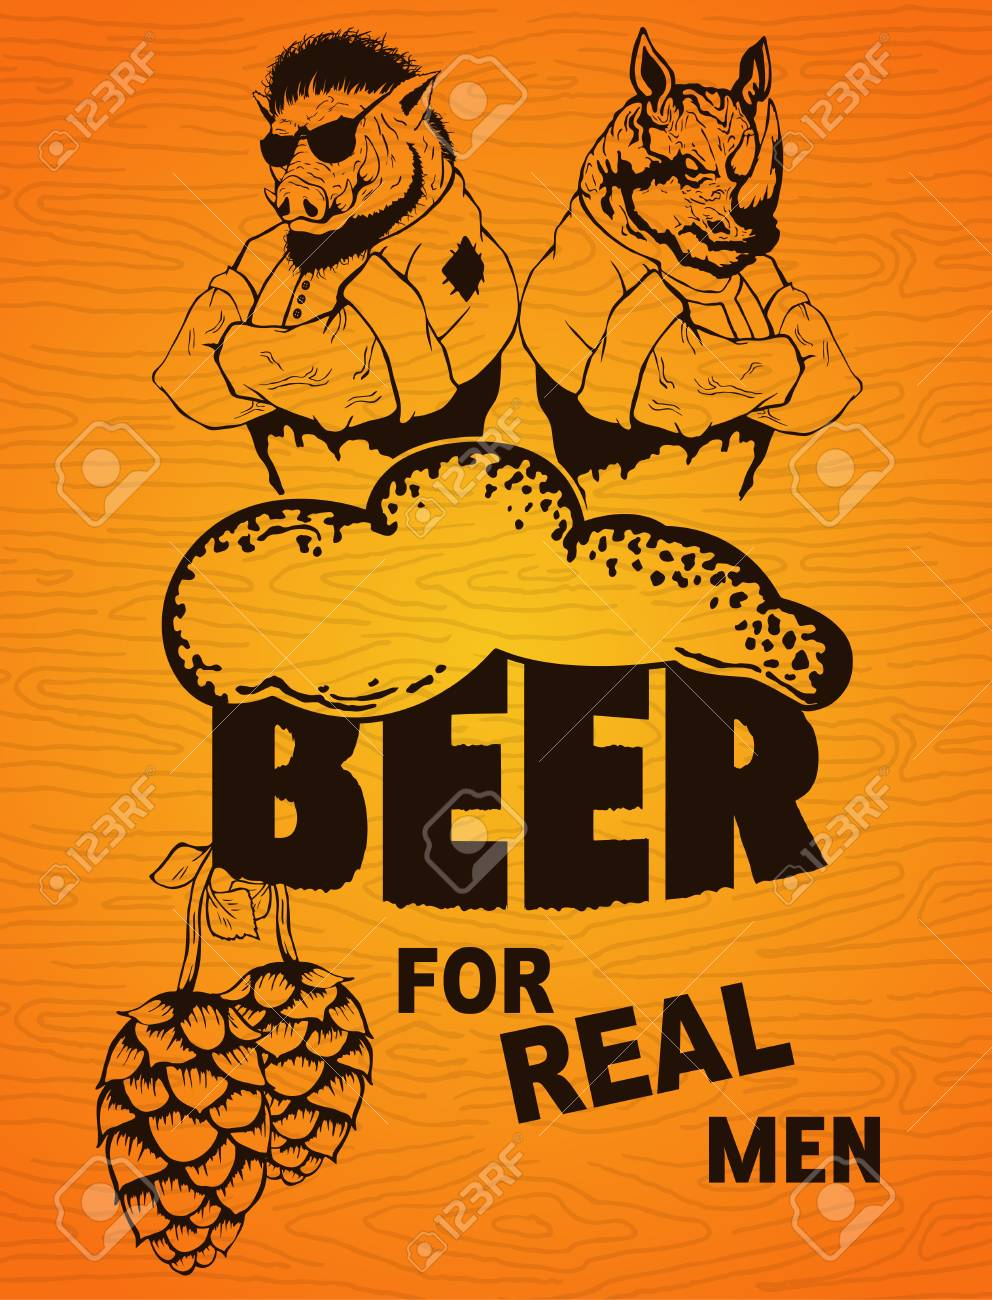 beer for real men poster on a wooden background royalty free